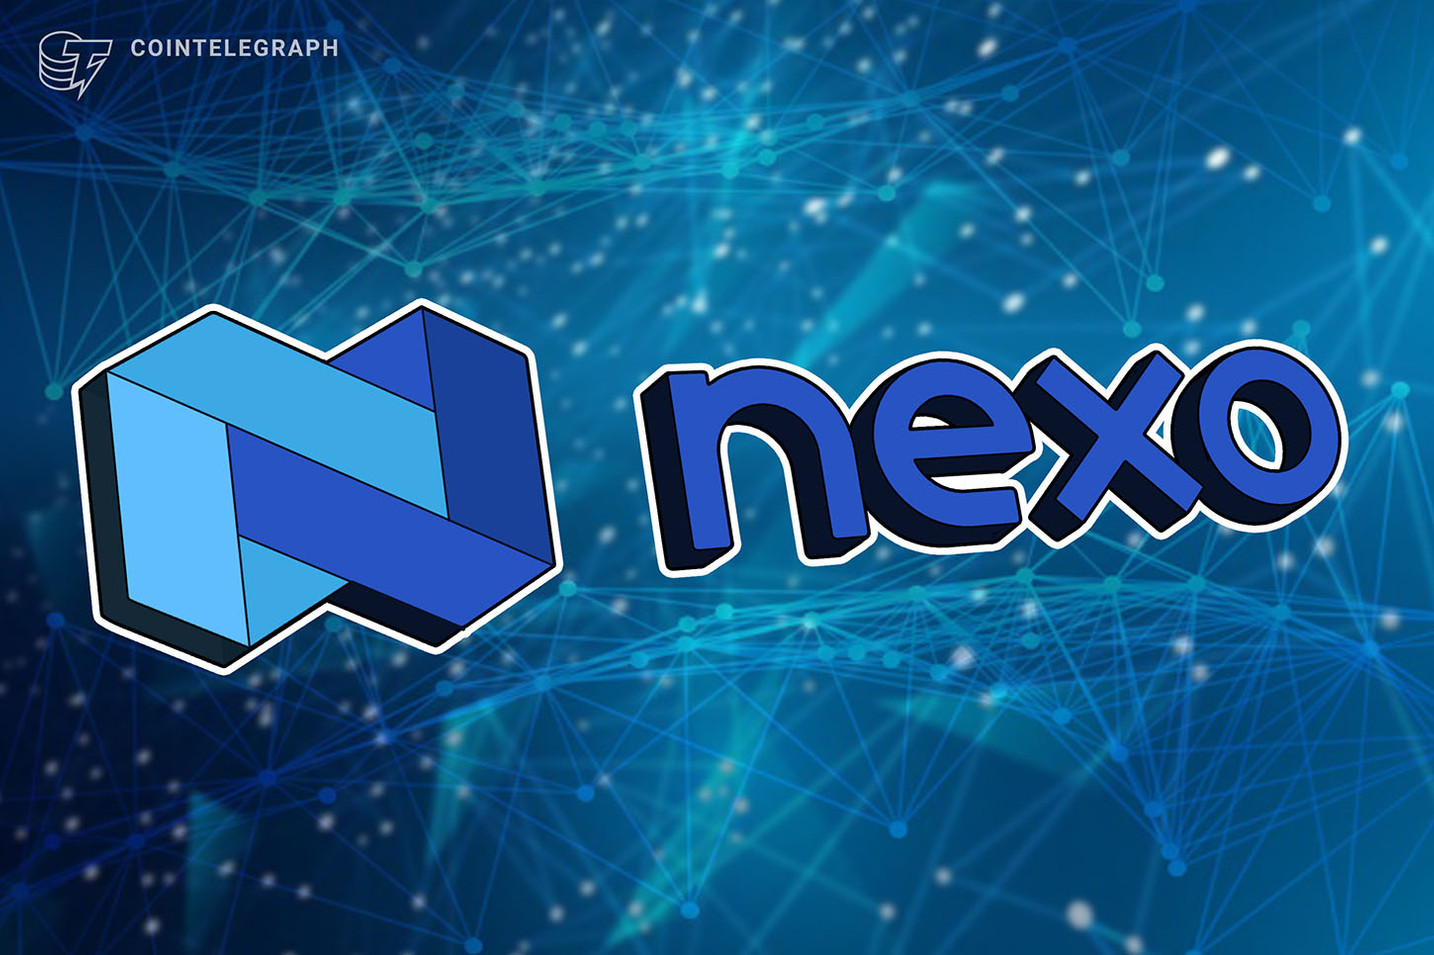 Nexo commits to supporting open-source Bitcoin development with $150K donation to Brink